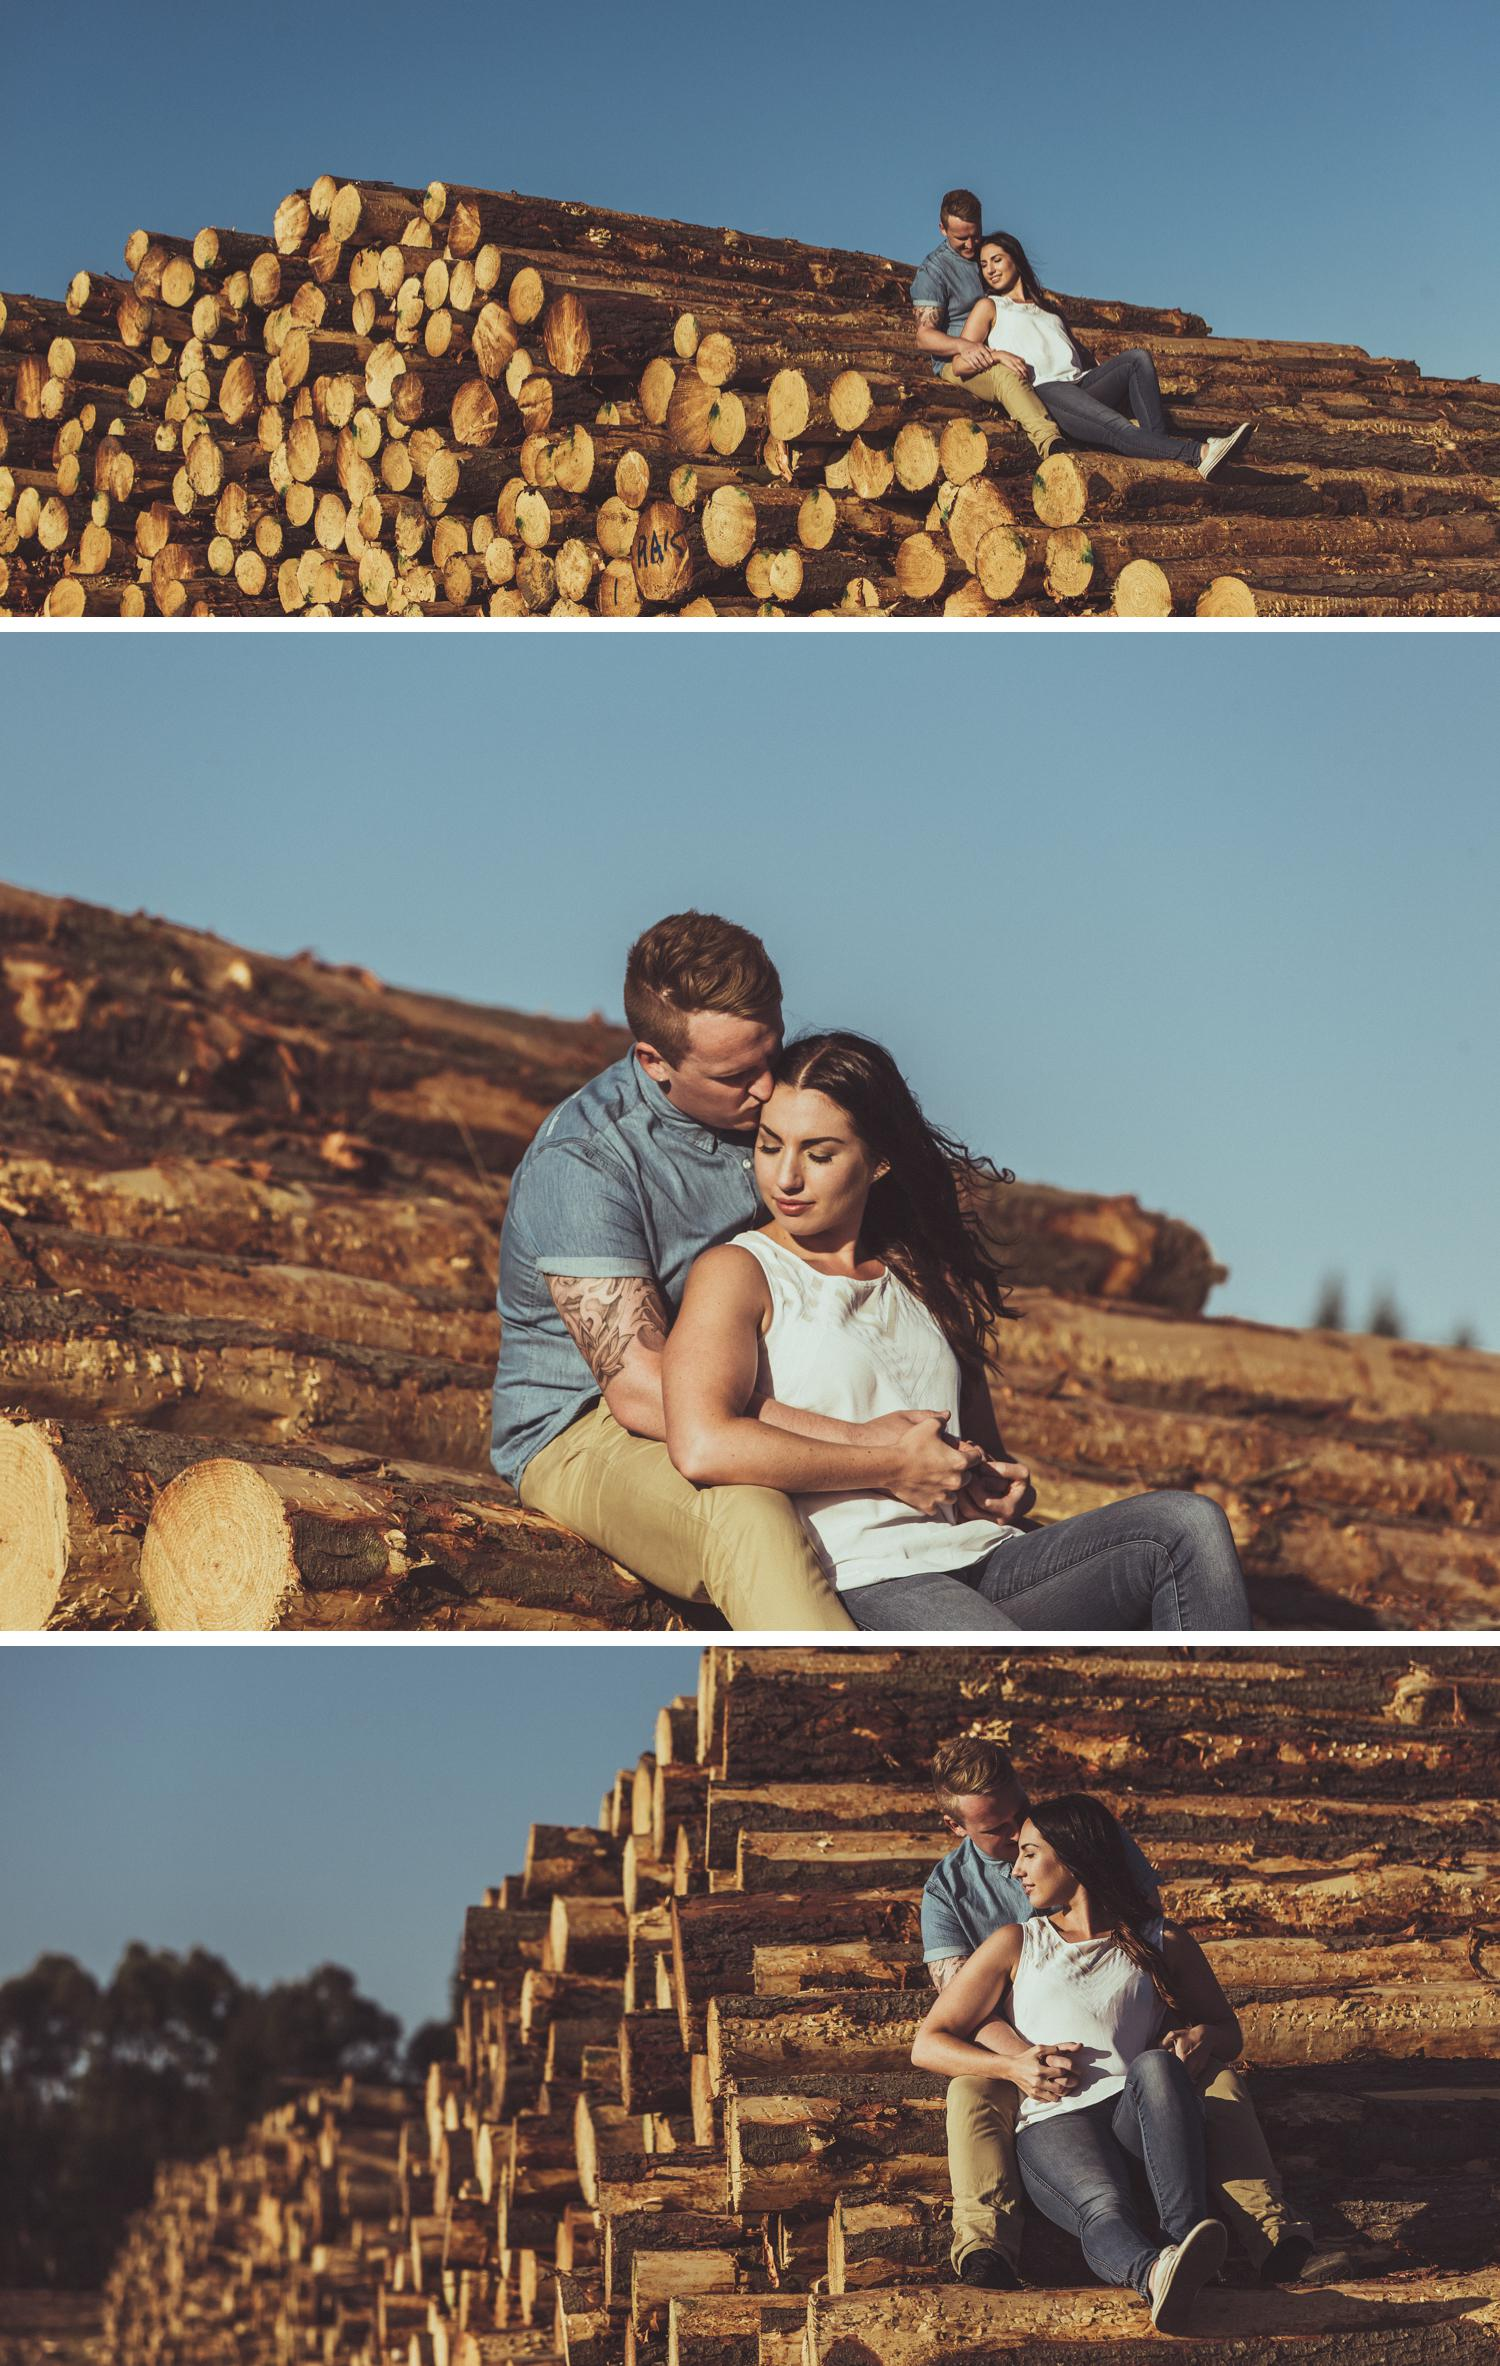 Plantation Engagement Shoot Gippsland, Gorgeous Couple Engagement Photos by Danae Studios, Couple Embracing, Trees Photos, Field Photoshoot